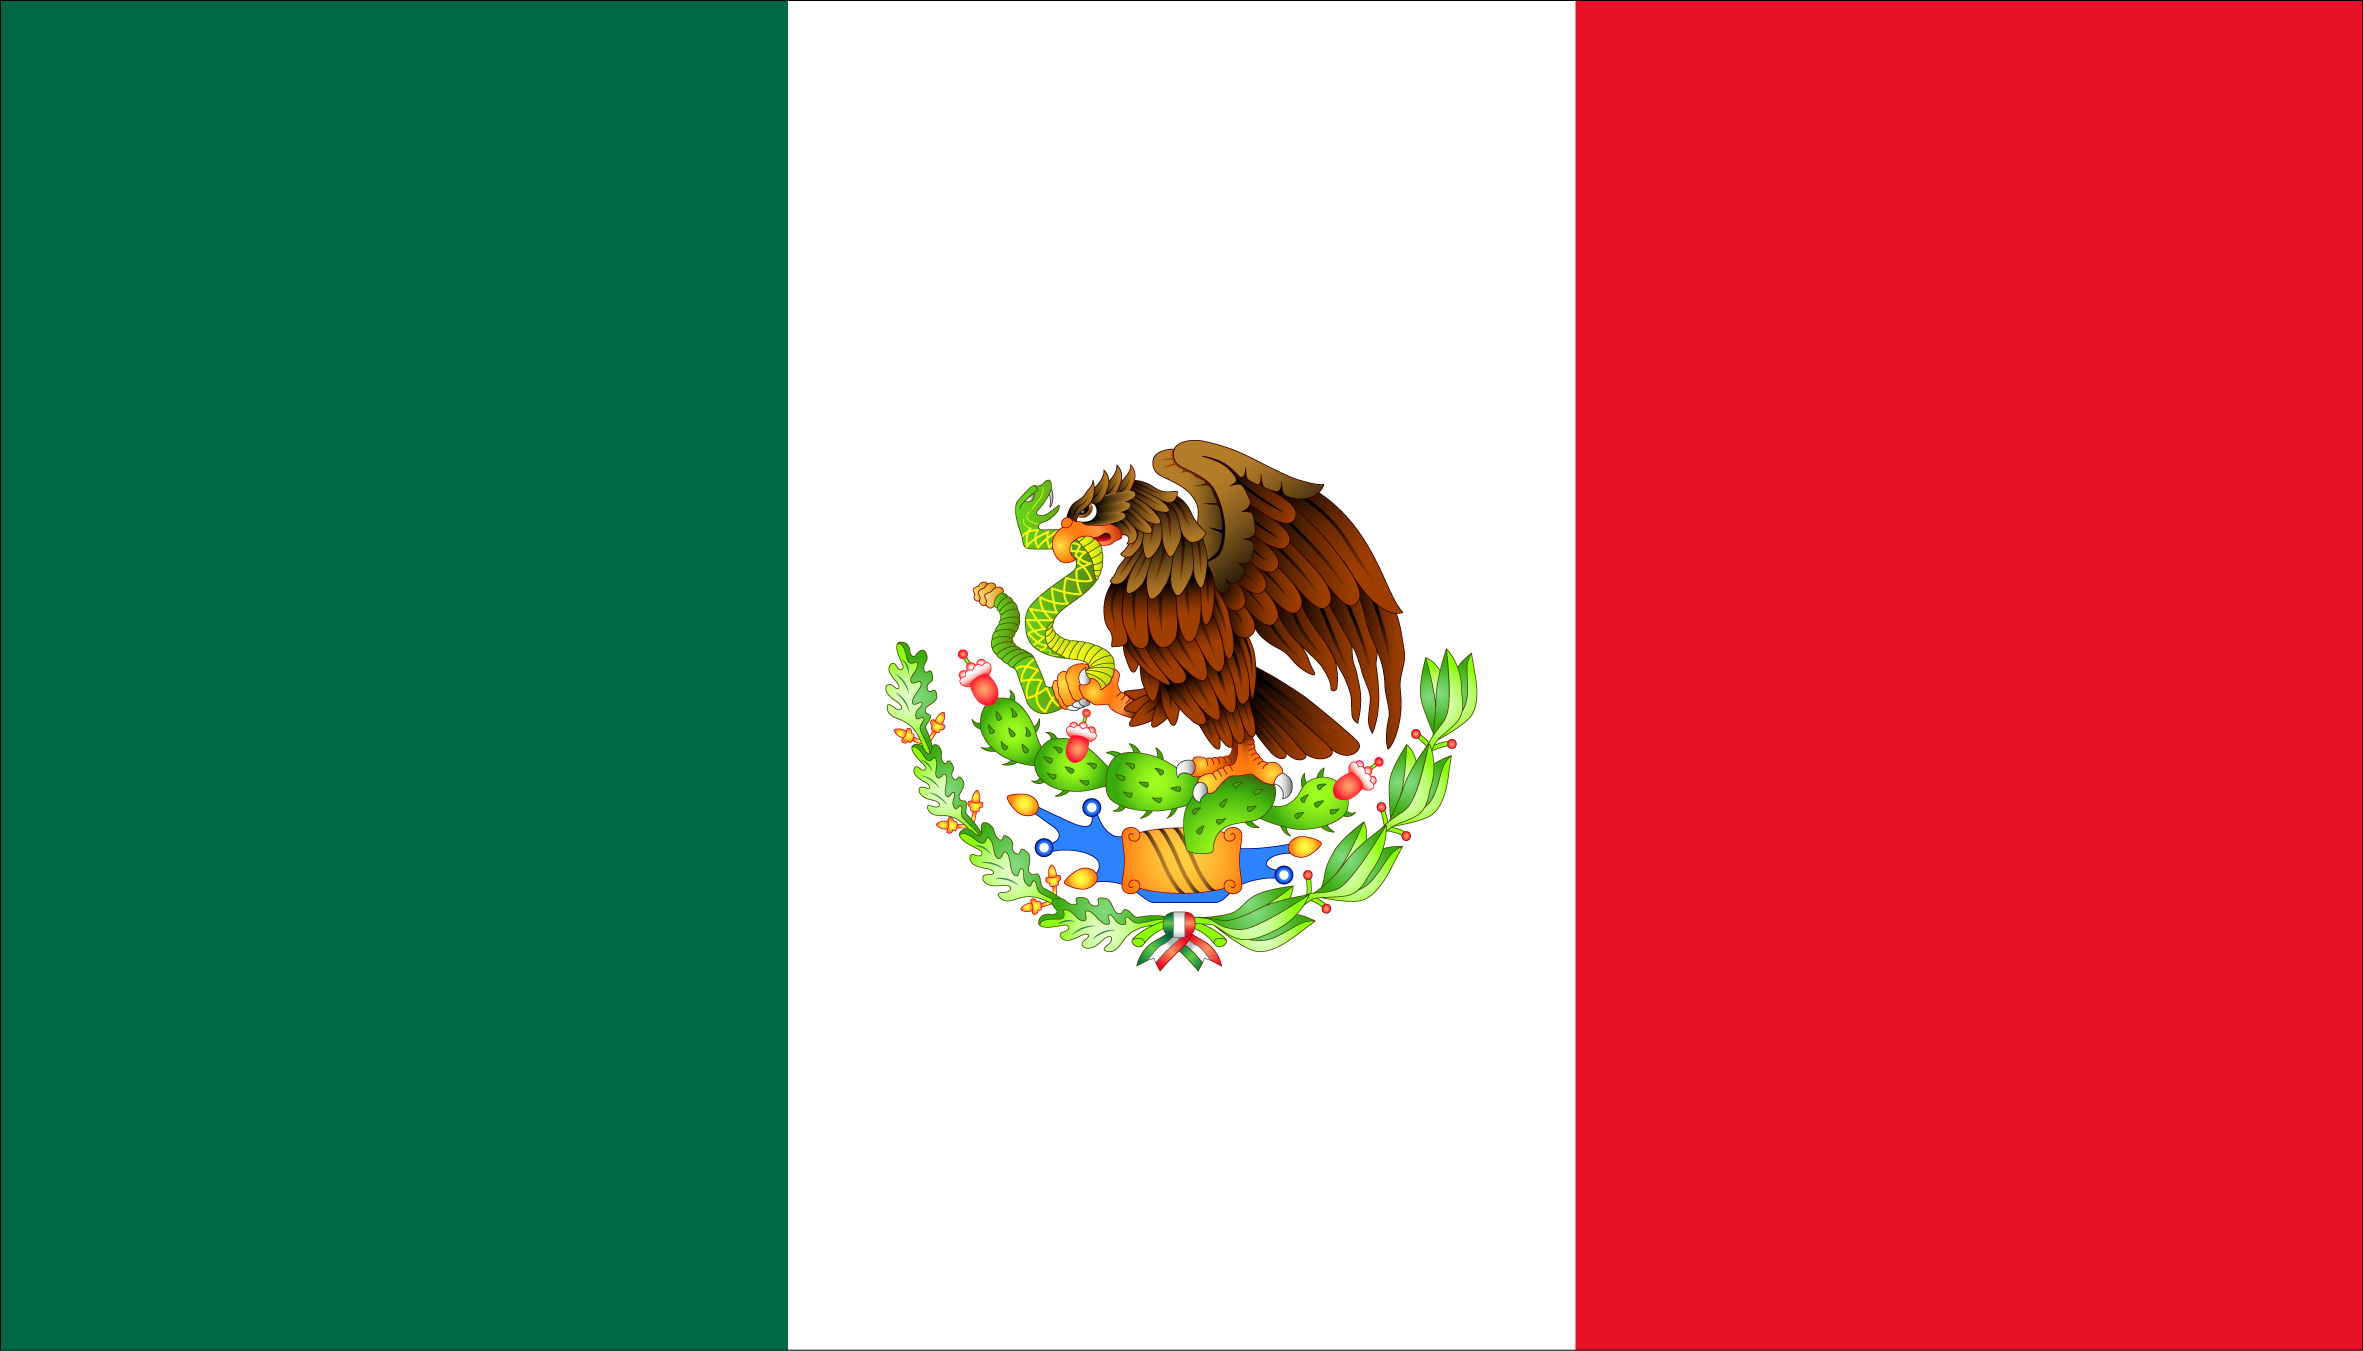 Mexican flag ideas about flag of mexico on flag clip art.